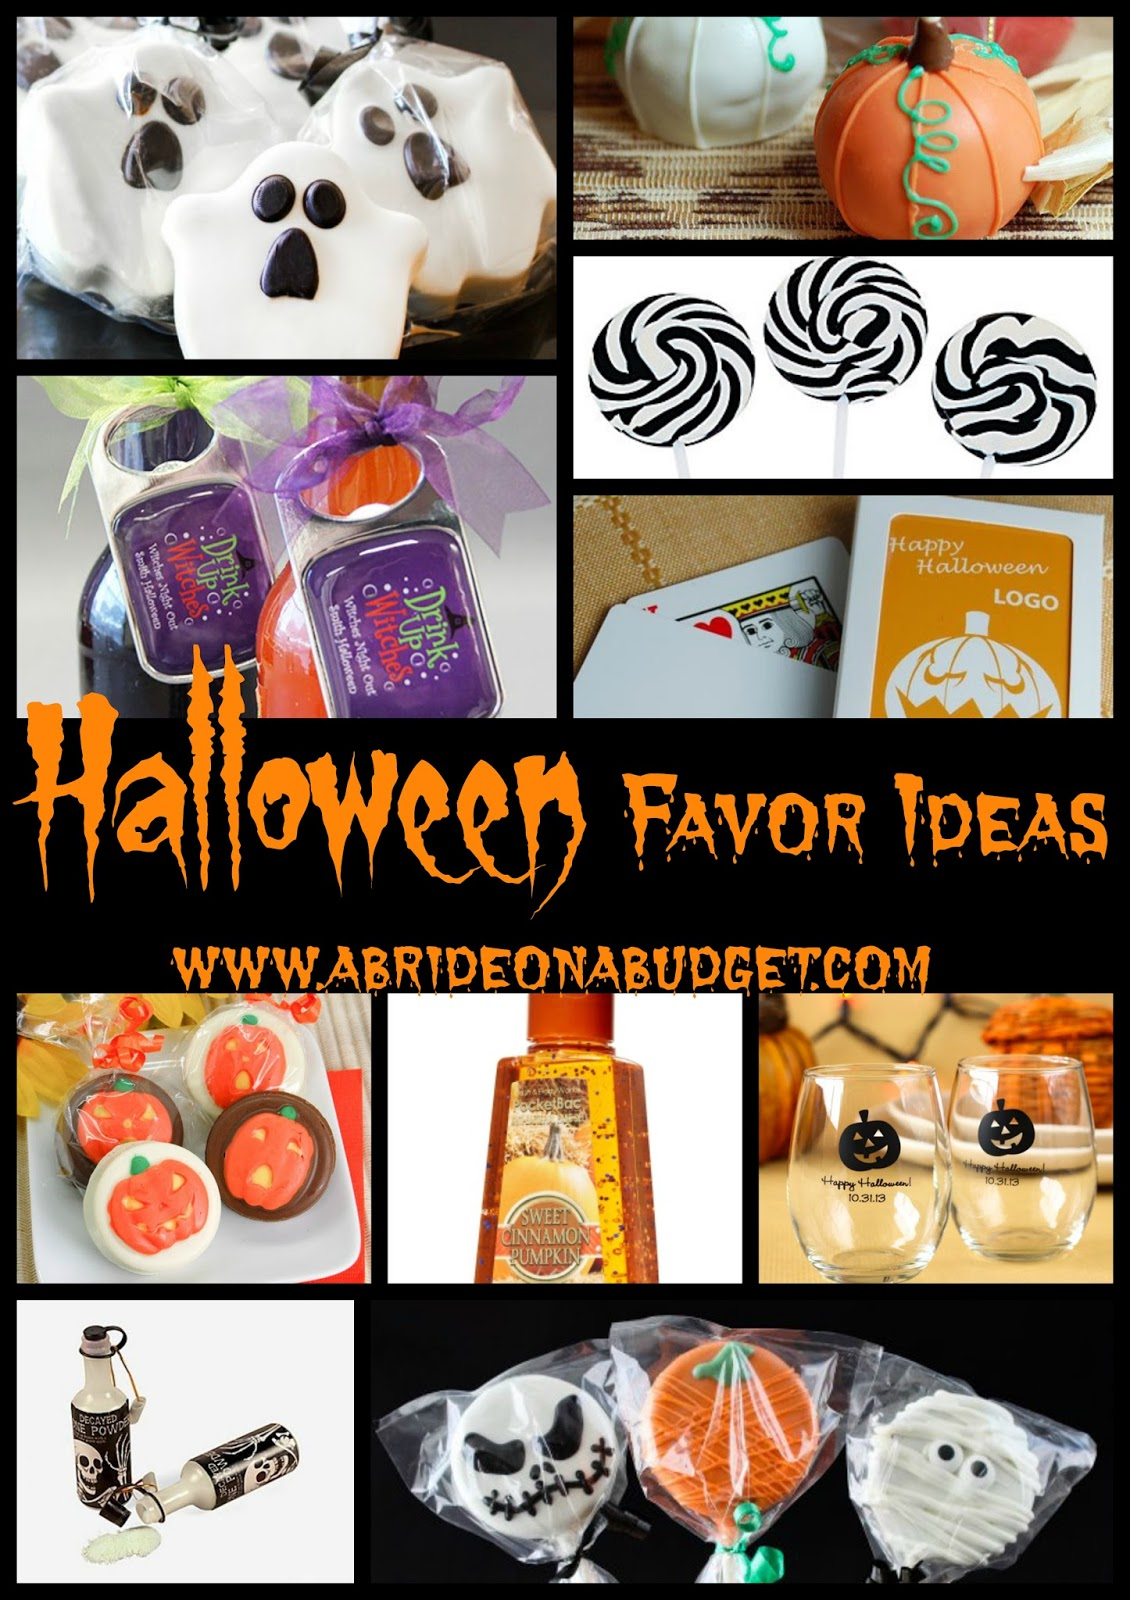 Halloween Wedding Favor Ideas | A Bride On A Budget